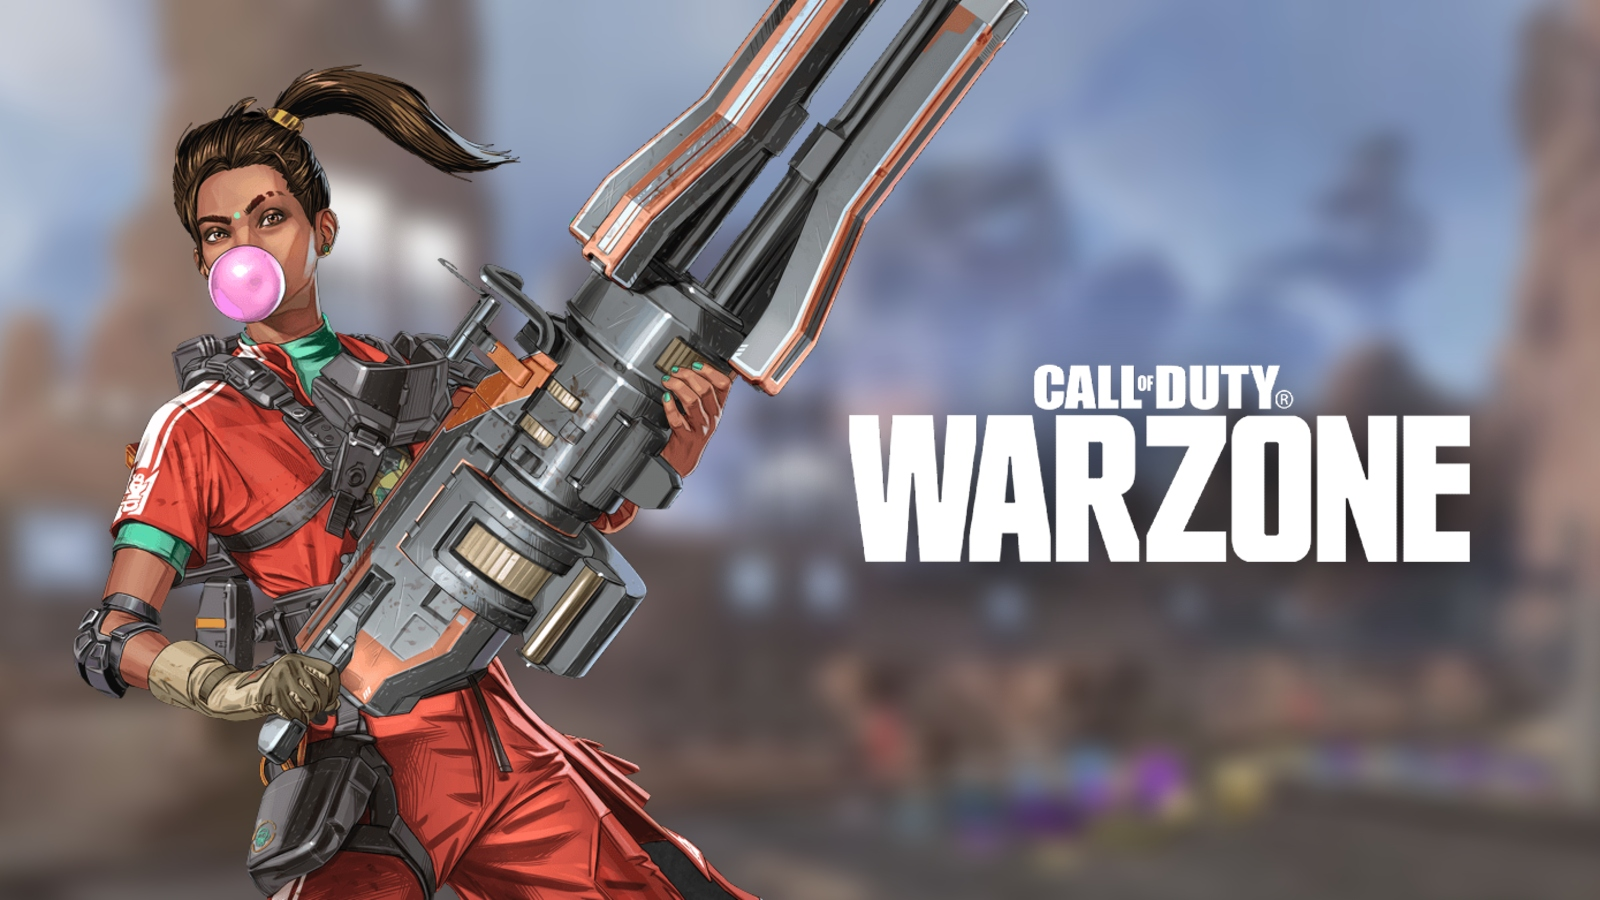 Warzone rampart apex legends feature